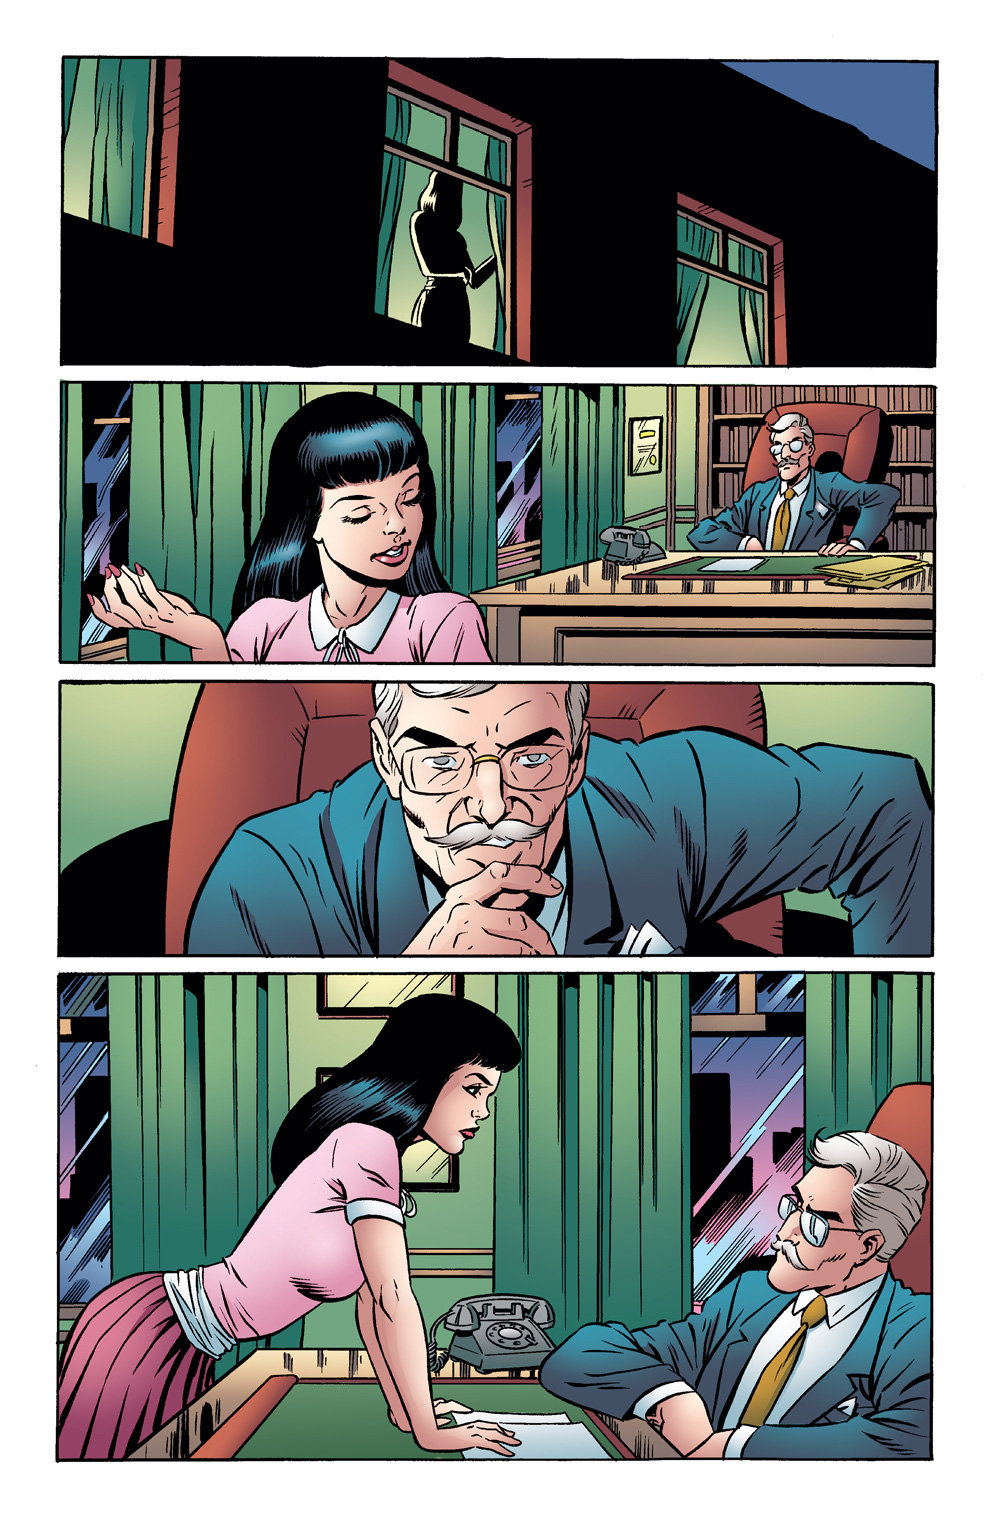 Archie 1955 #1 comic panel - Veronica and Hiram Lodge chat